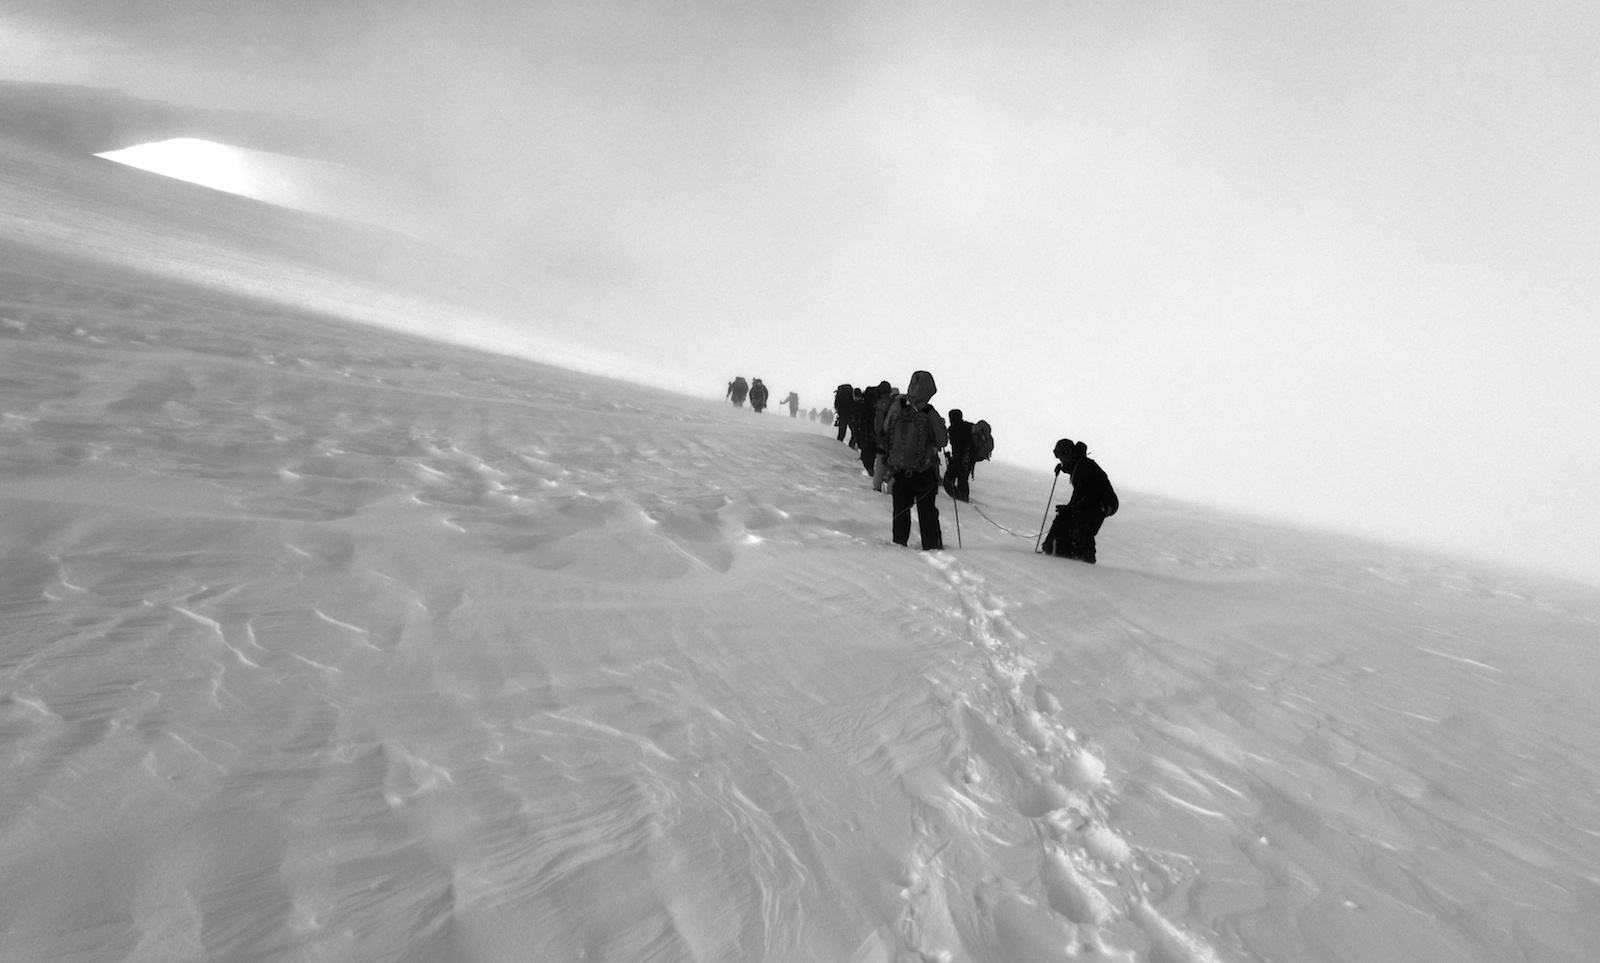 Climbers in a Monte Rosa White Out